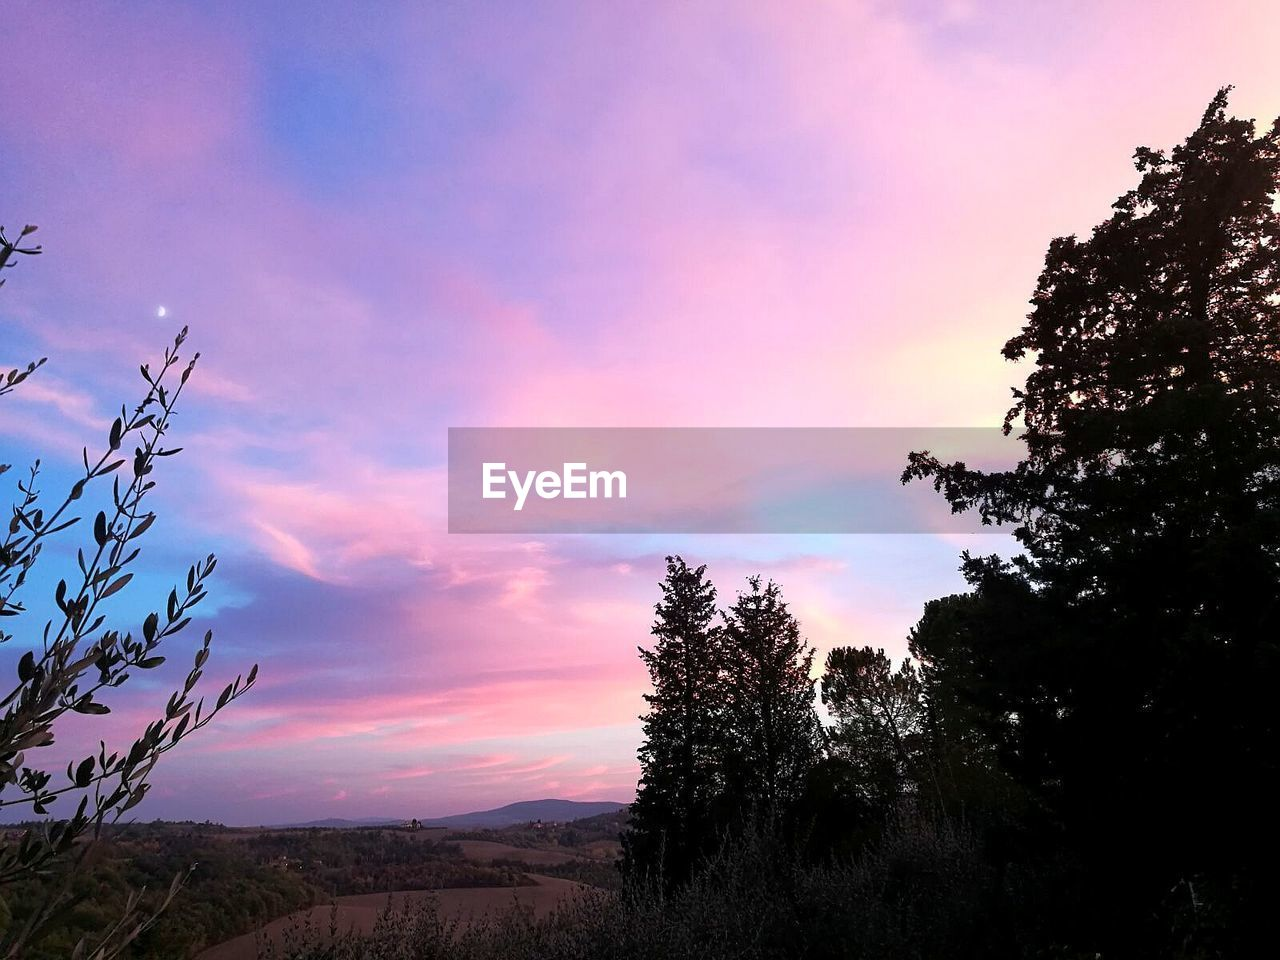 sunset, tree, beauty in nature, nature, sky, scenics, tranquility, tranquil scene, no people, silhouette, outdoors, growth, landscape, day